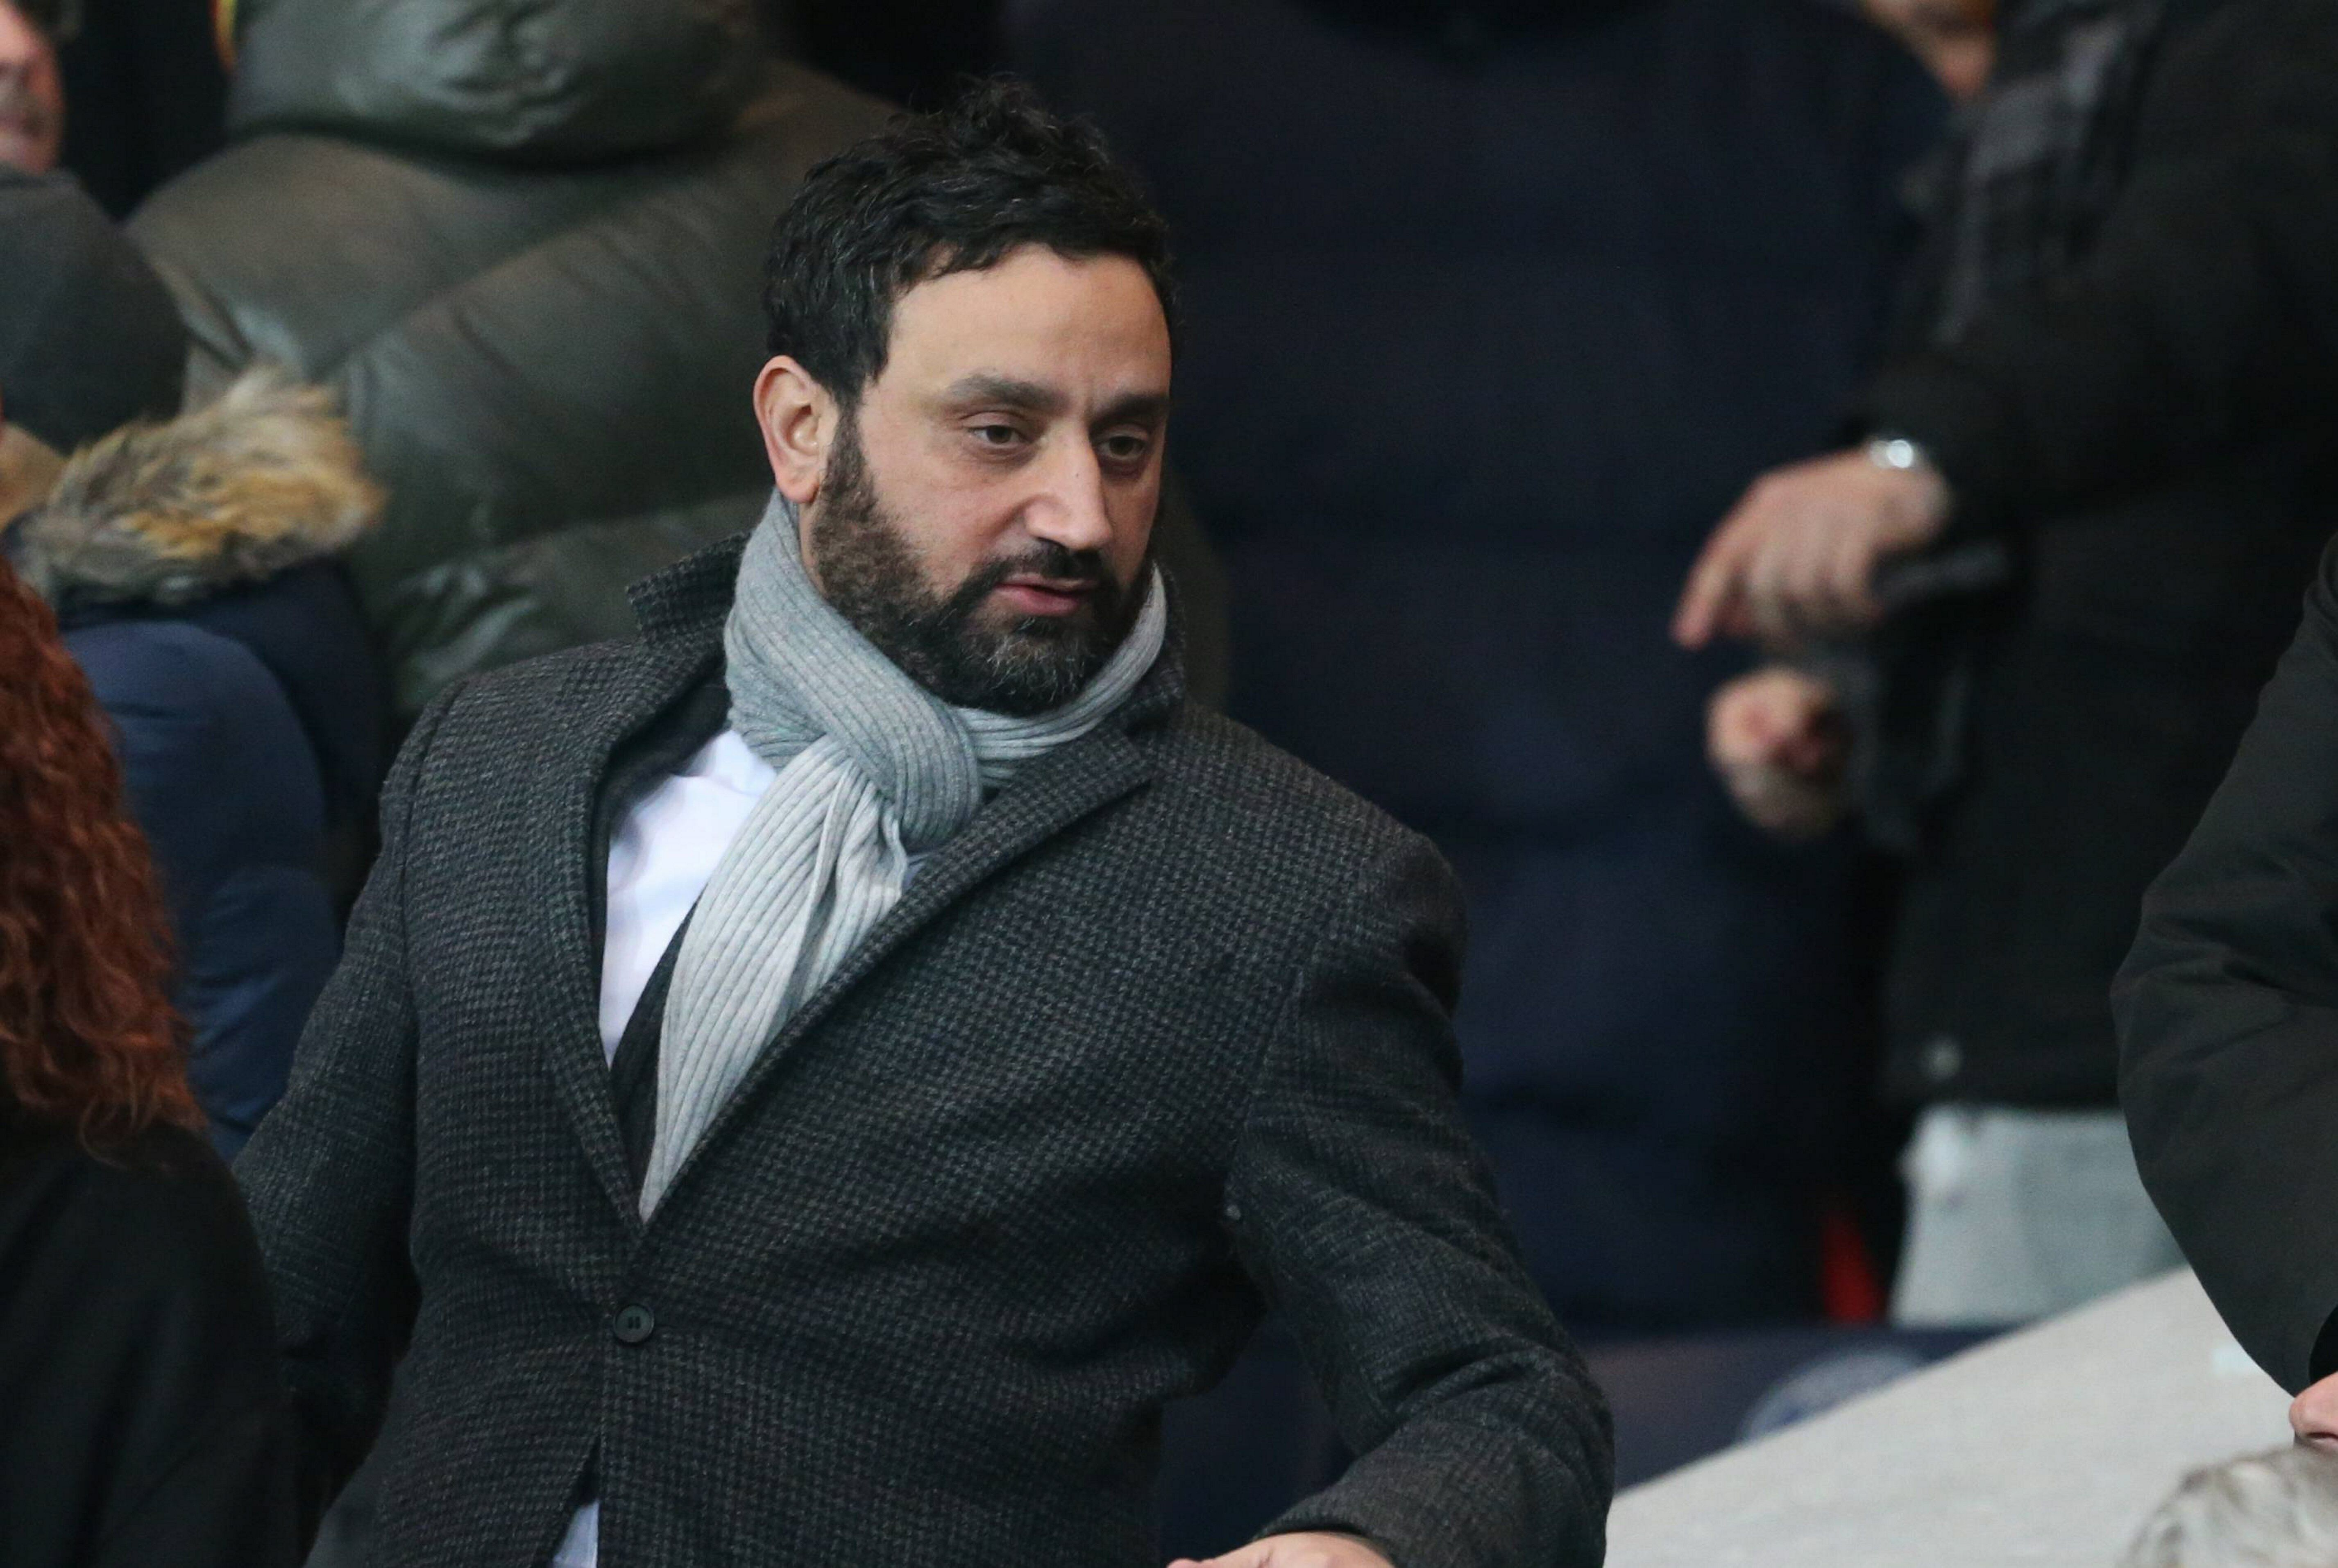 Cyril Hanouna assiste au cours de la Ligue 1 française entre le Paris Saint-Germain et l'Olympique Lyonnais au Parc des Princes le 13 décembre 2015 à Paris, France. | Photo : Getty